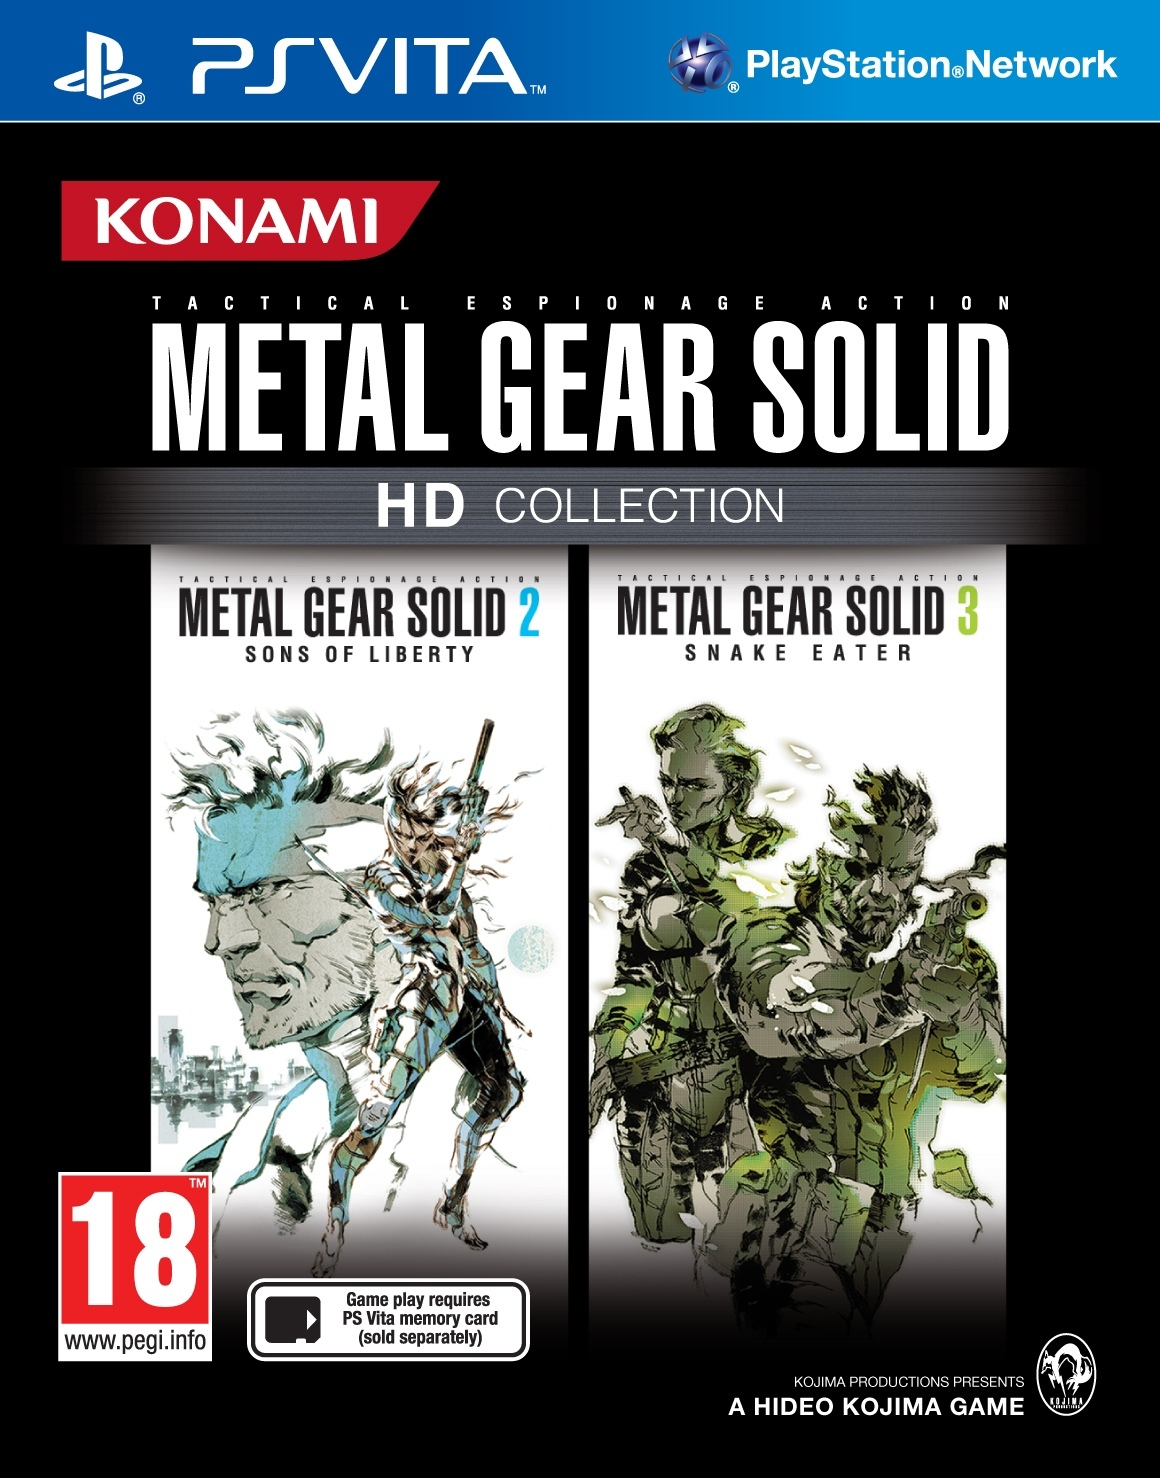 jaquette-metal-gear-solid-hd-collection-playstation-vita-cover-avant-g-1335796929.jpg